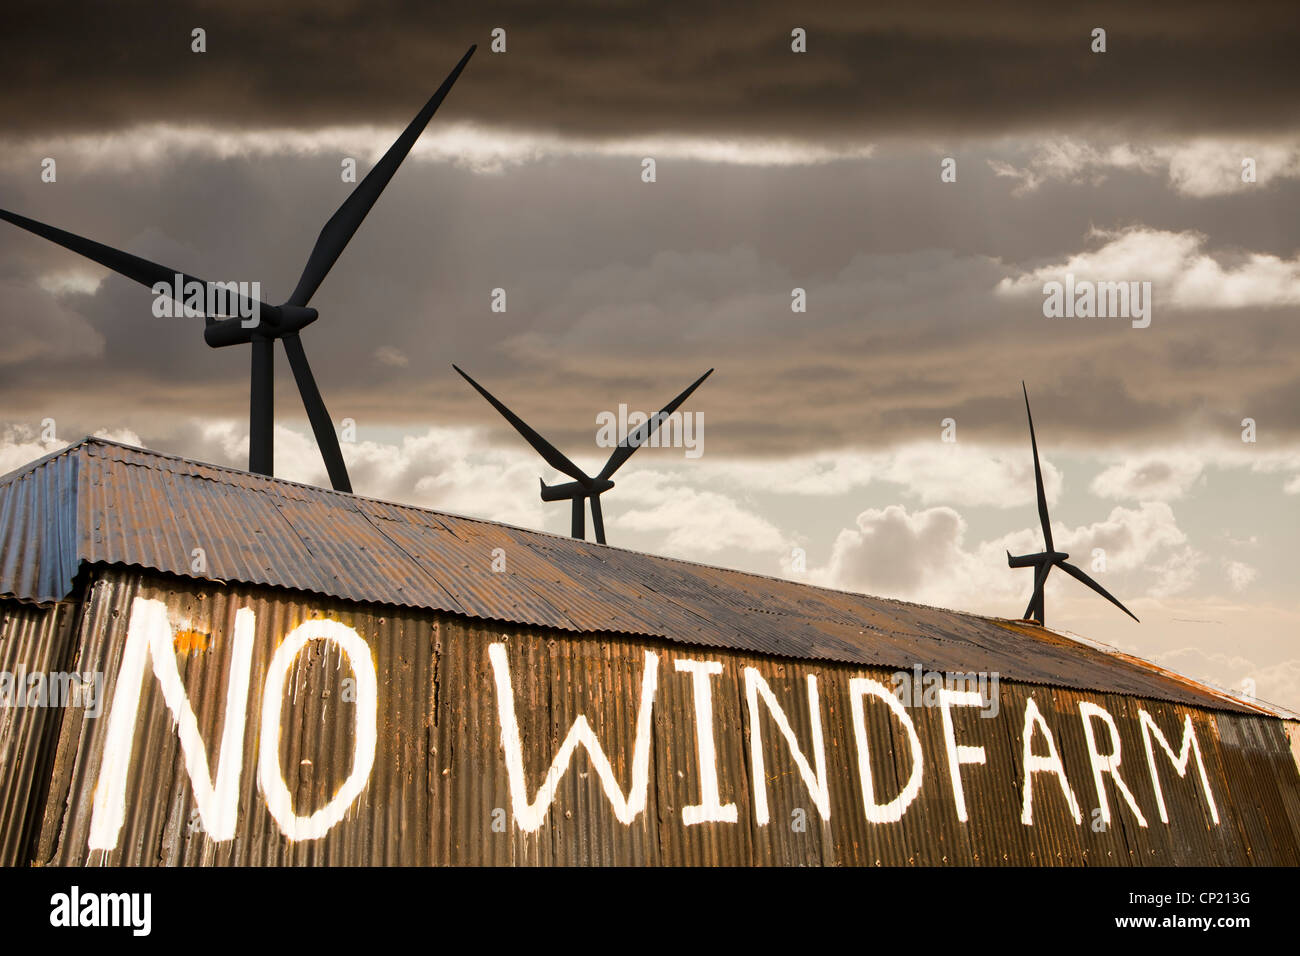 A wind farm protest in Carlisle and wind turbines behind, Cumbria, UK. - Stock Image